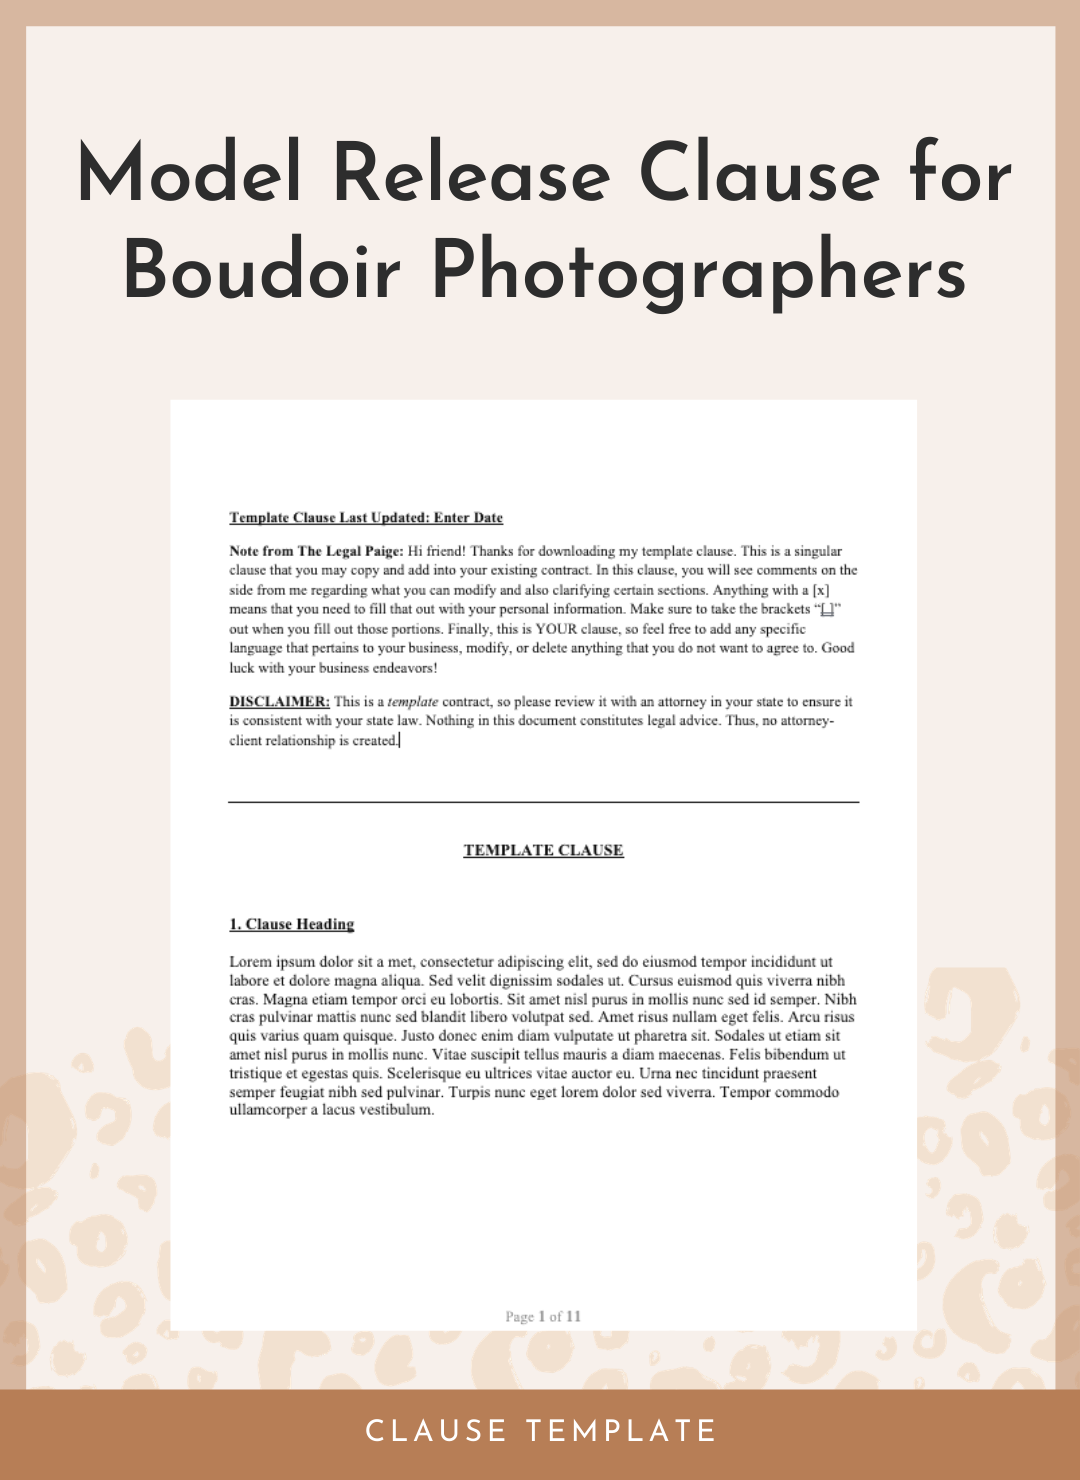 Model Release Clause for Boudoir Photographers